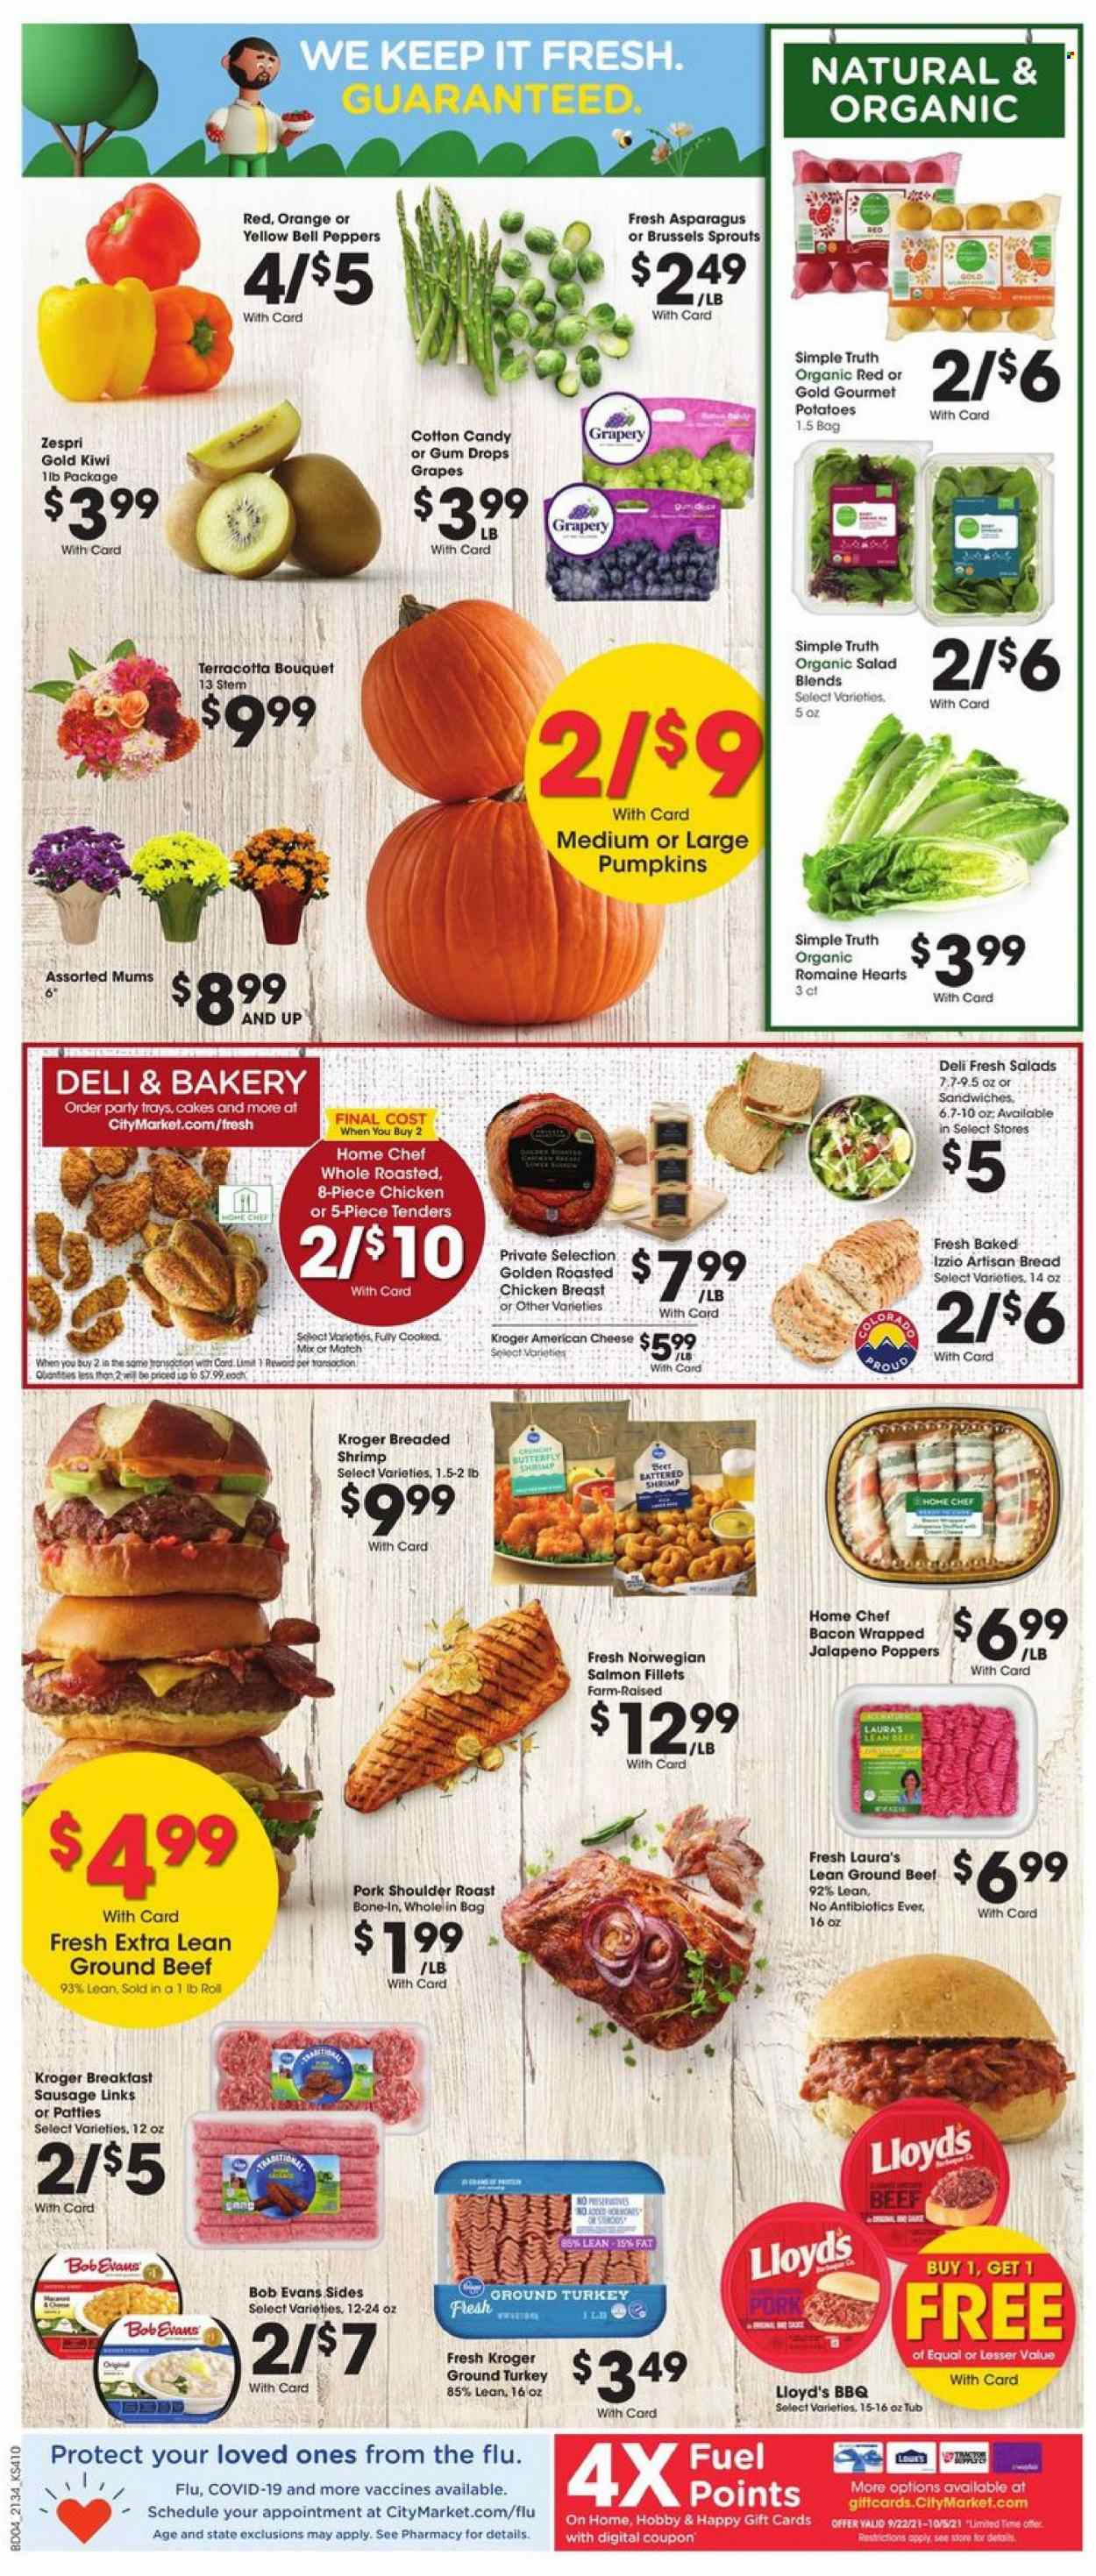 City Market Ad from september 22 to 28 2021 - Page 7